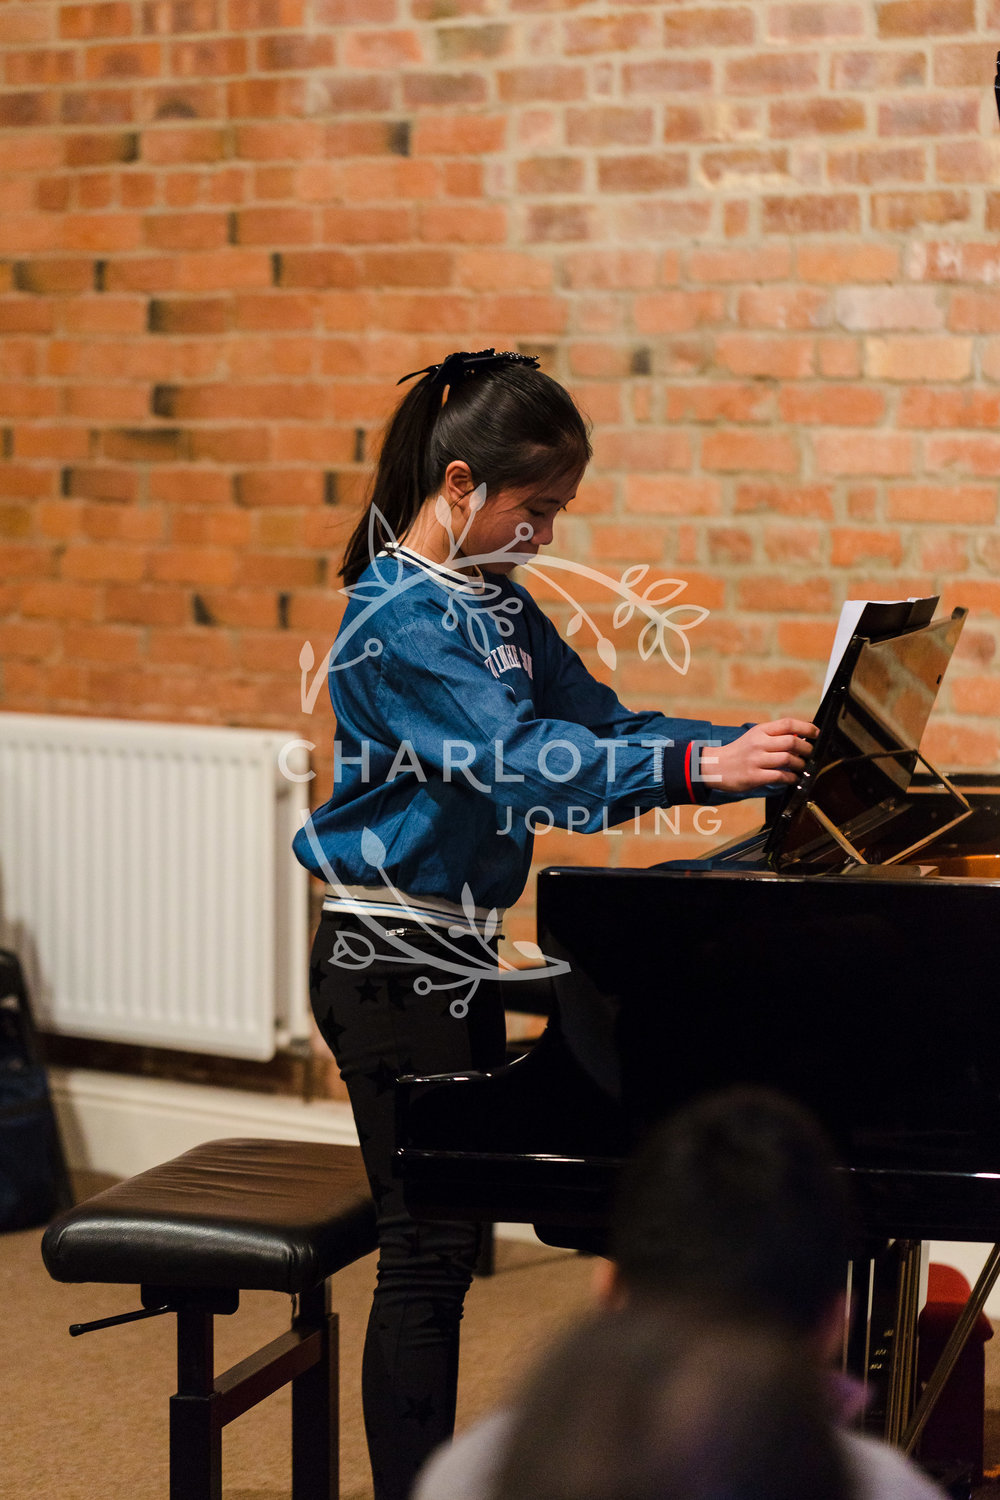 Stepping-Stones-Voicebox-Concert-2018-by-Charlotte-Jopling-72.jpg